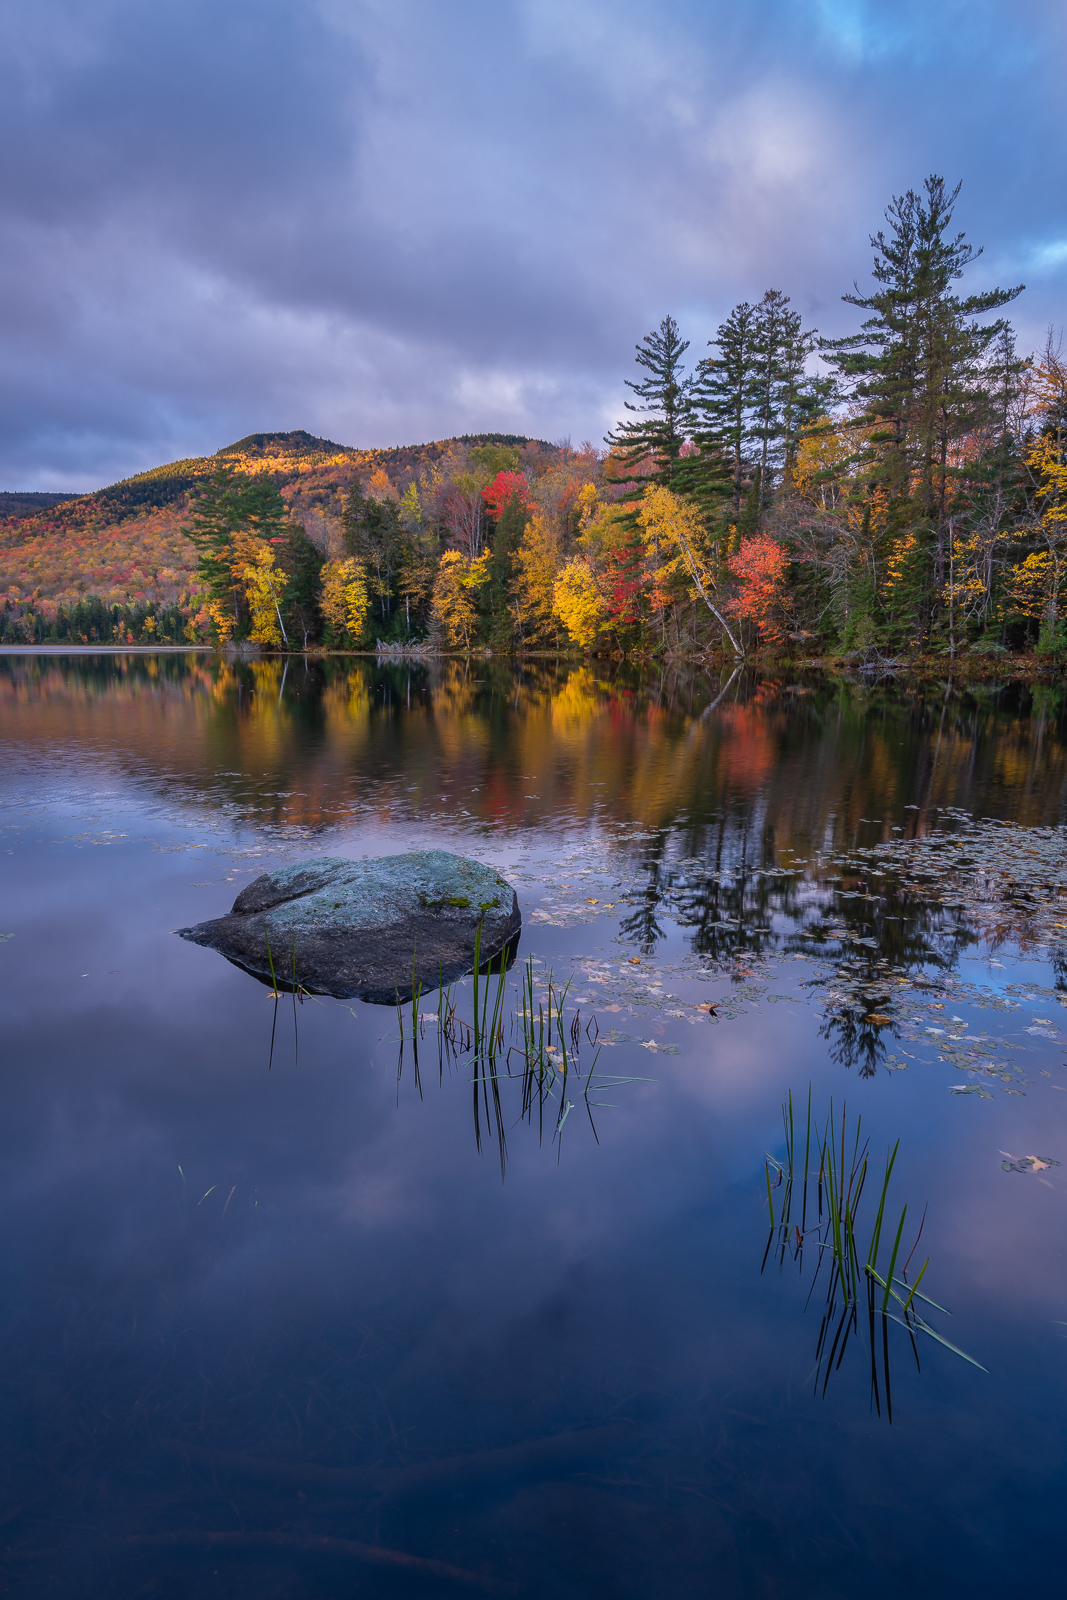 Sunrise and perfectly still reflections on Lefferts Pond, Green Mountain National Forest, Vermont.